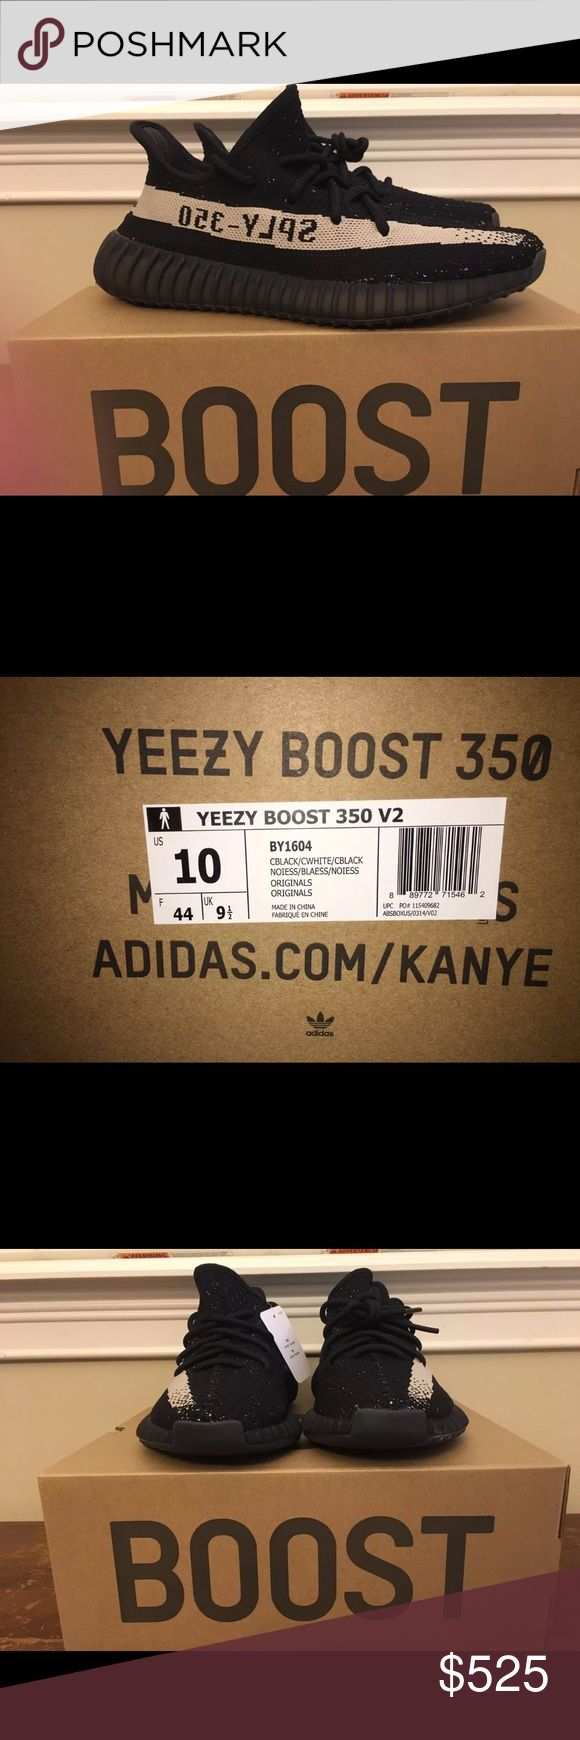 yeezy boost 350 for sale under $100 yeezy boost 350 for sale size 14